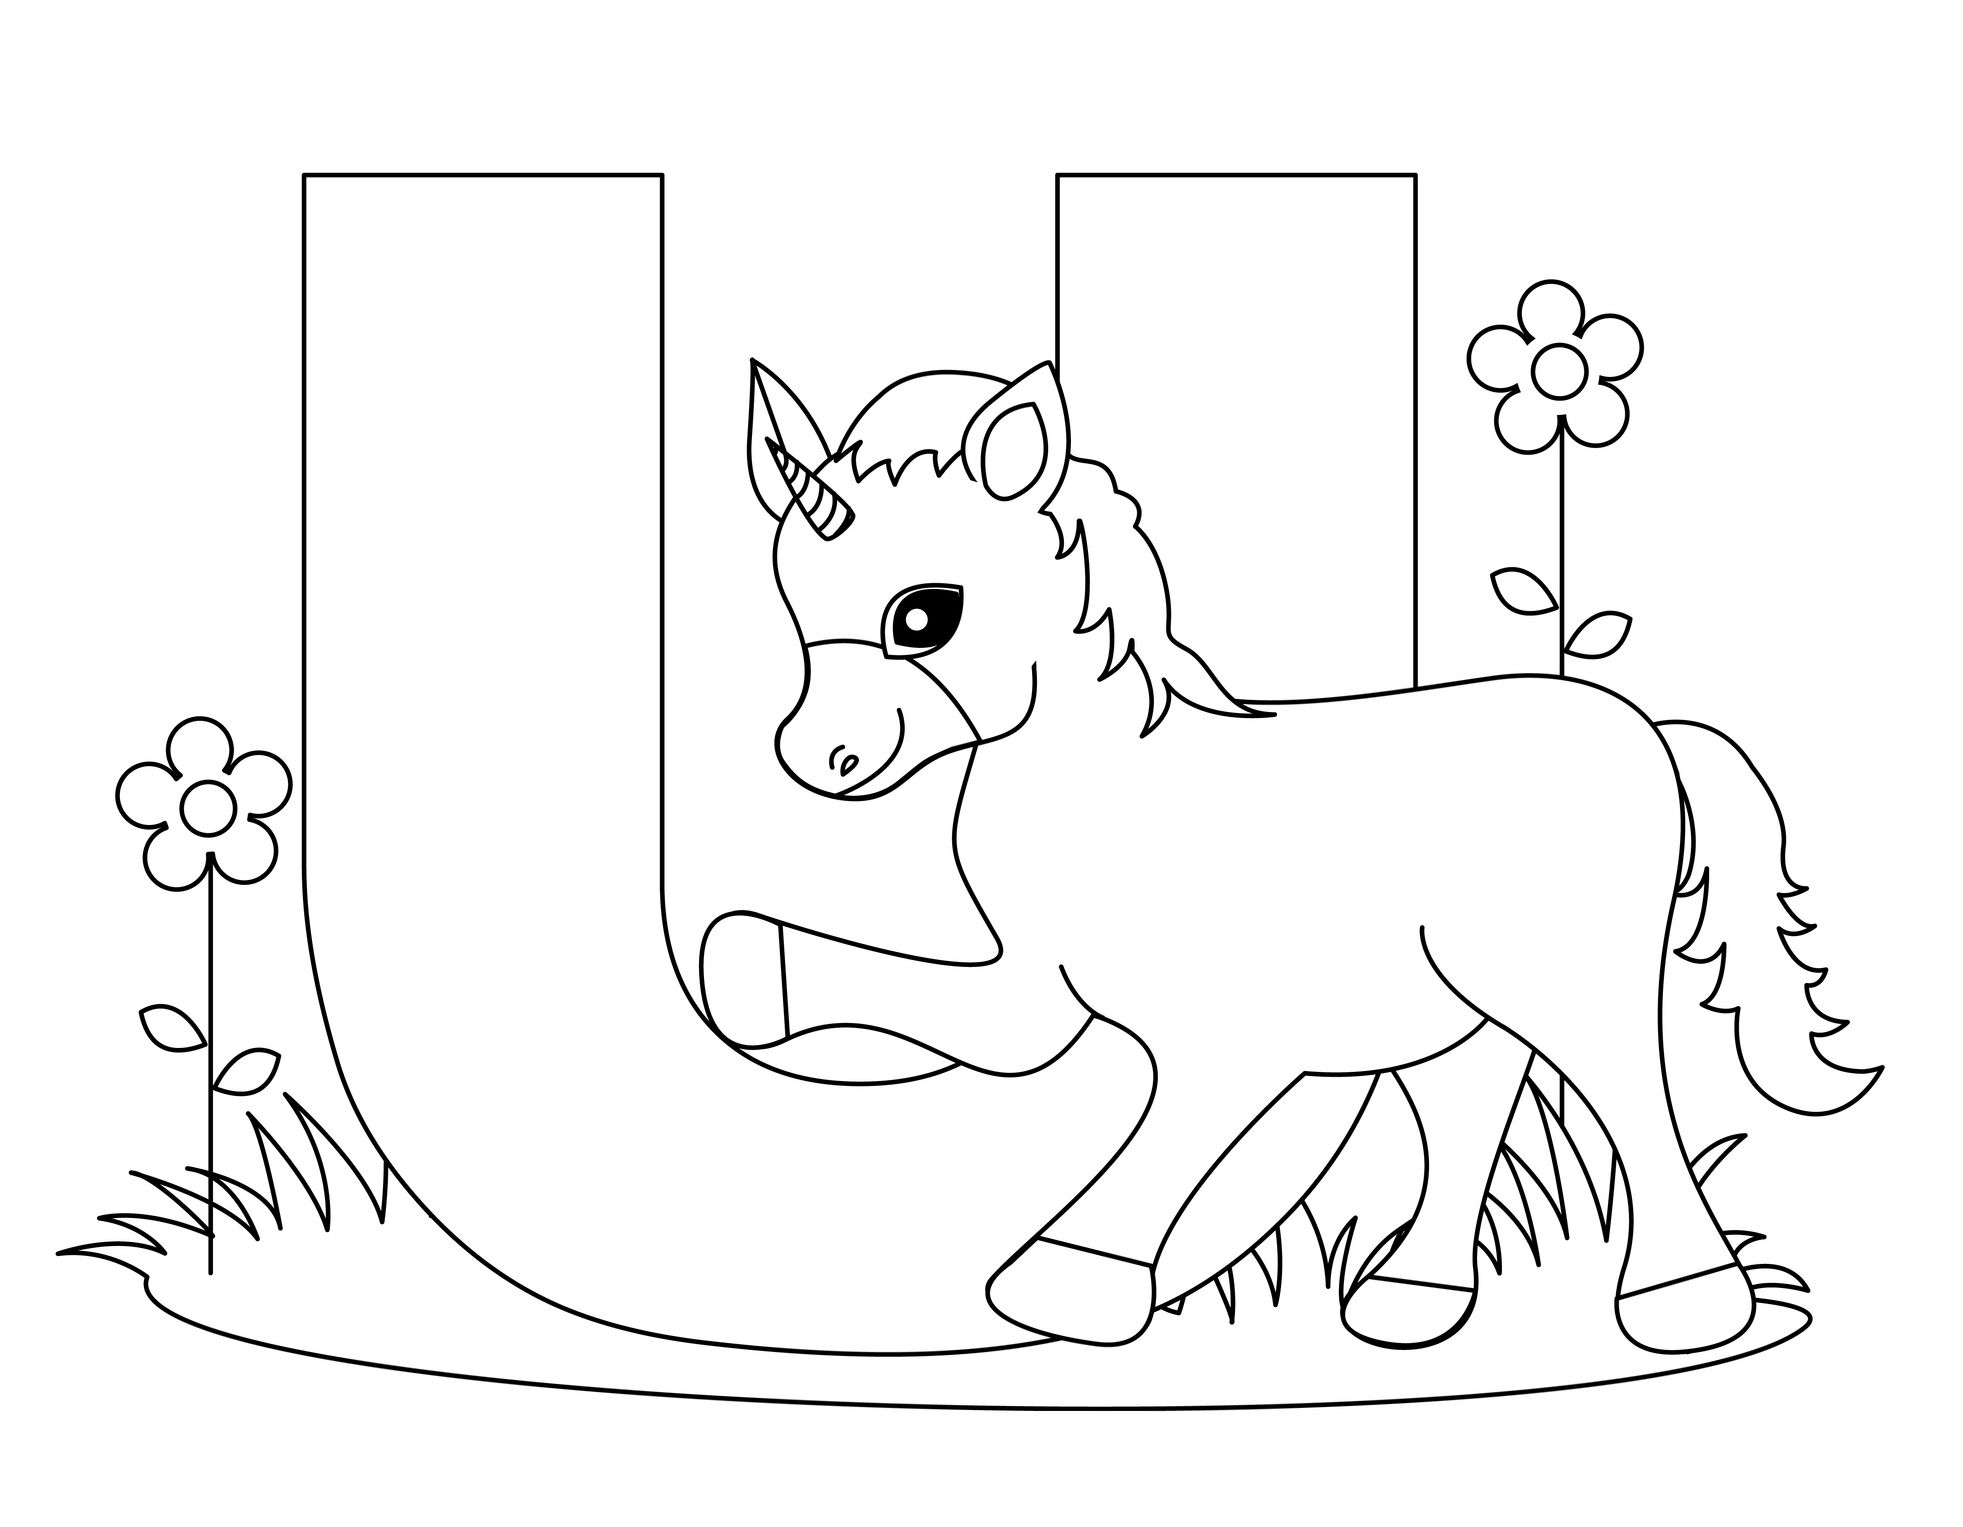 Pre k coloring pages alphabet - Find This Pin And More On Alphabet Crafts The Letter U By Sjcmomof2 Nice Baby Zoo Animal Coloring Pages